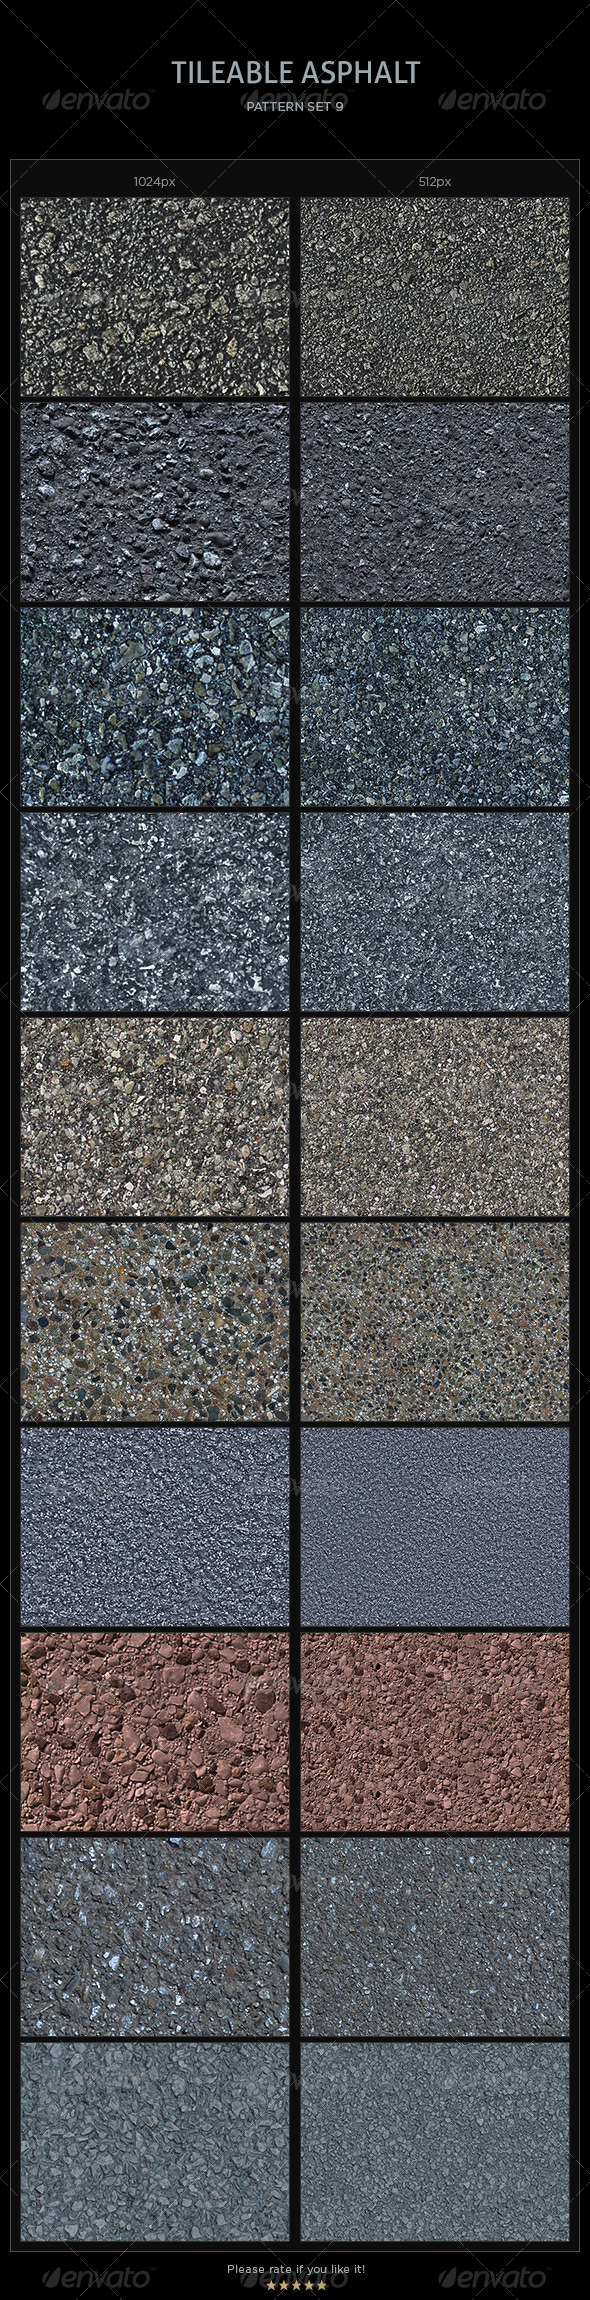 GraphicRiver 10 Tileable Asphalt Textures Patterns 4282095